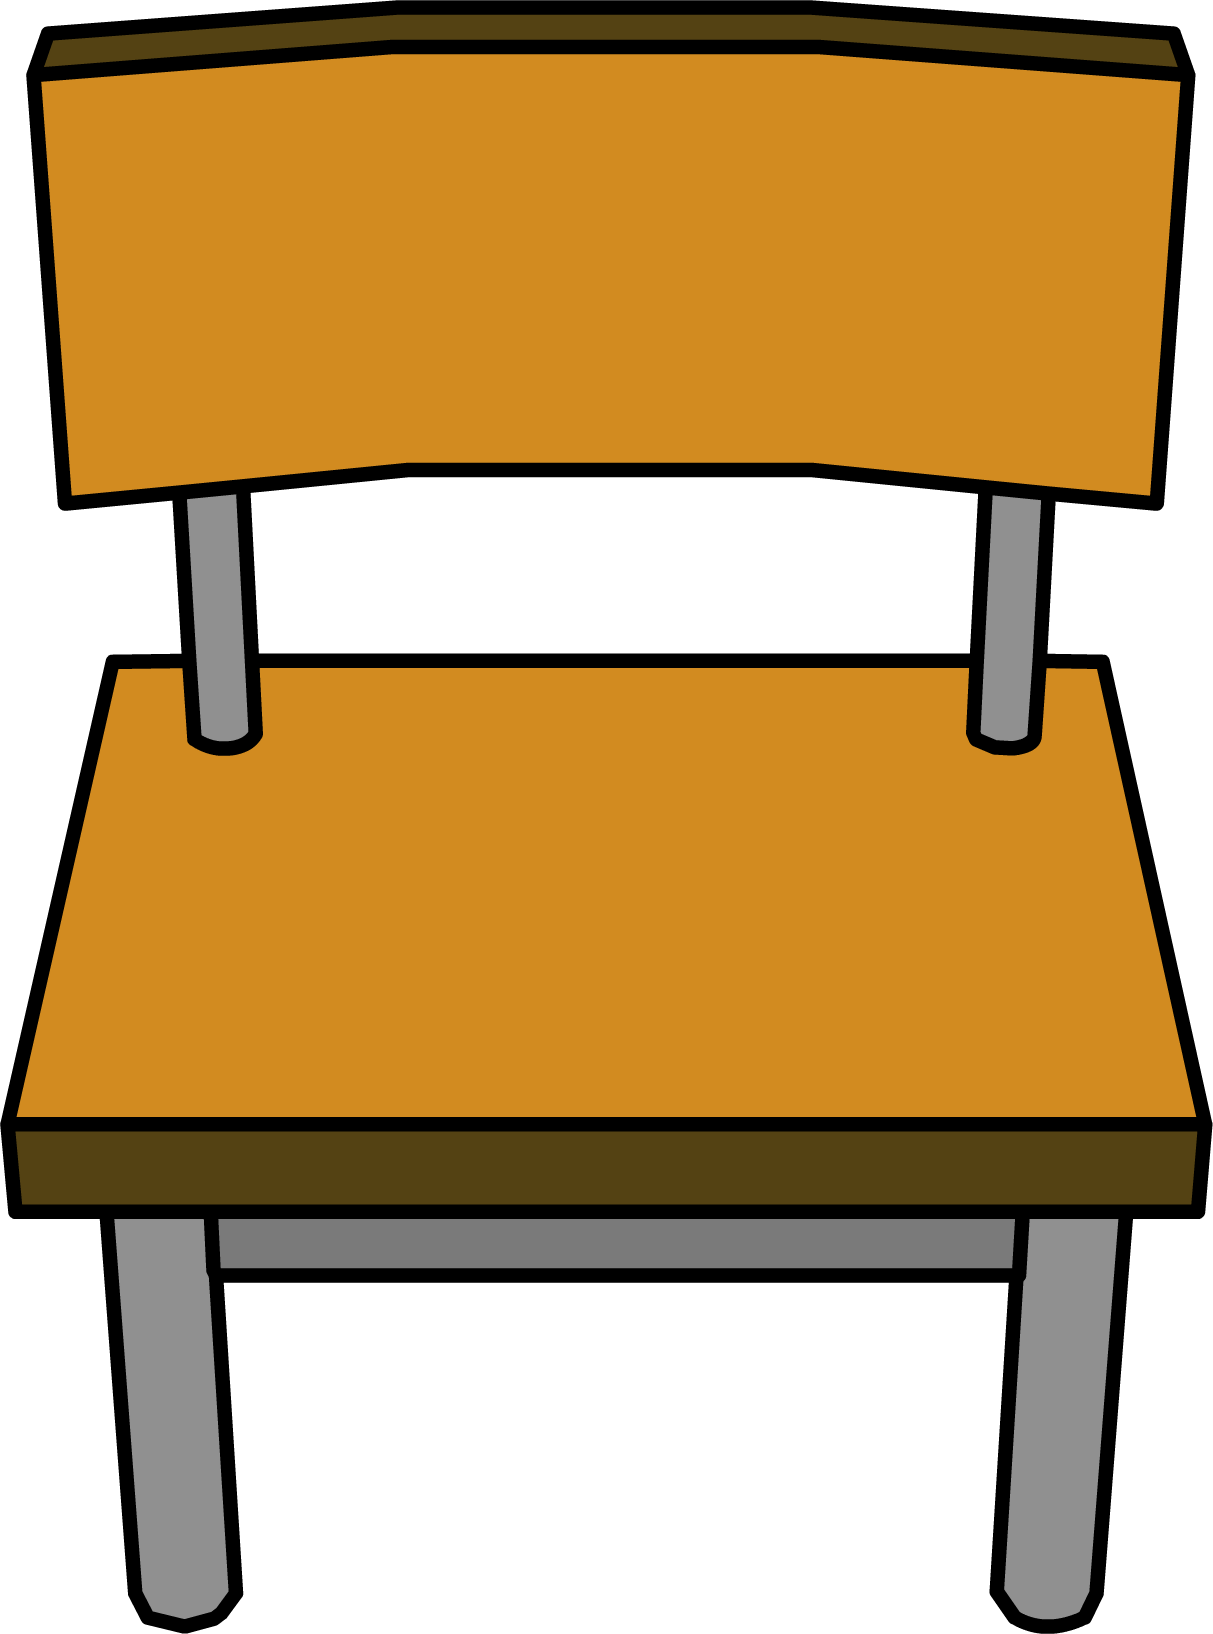 Furniture clipart furniture shop. Classroom chair club penguin